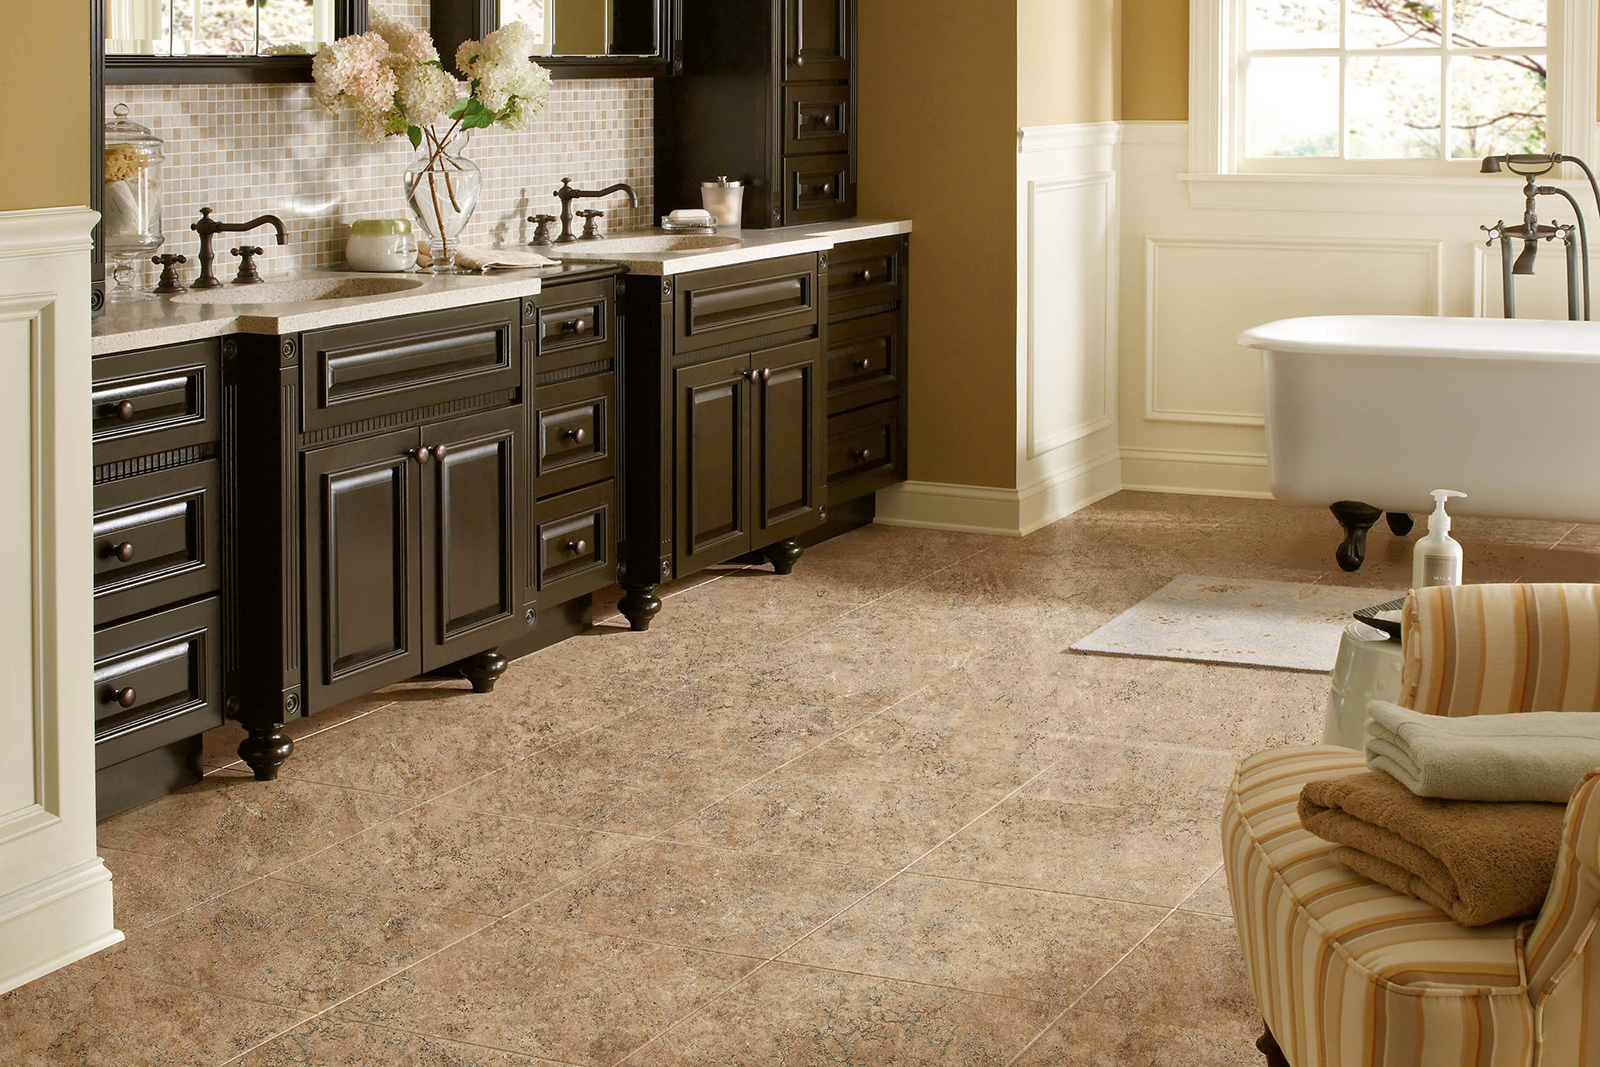 Some Standard Bathroom Flooring Options and Their Efficiency